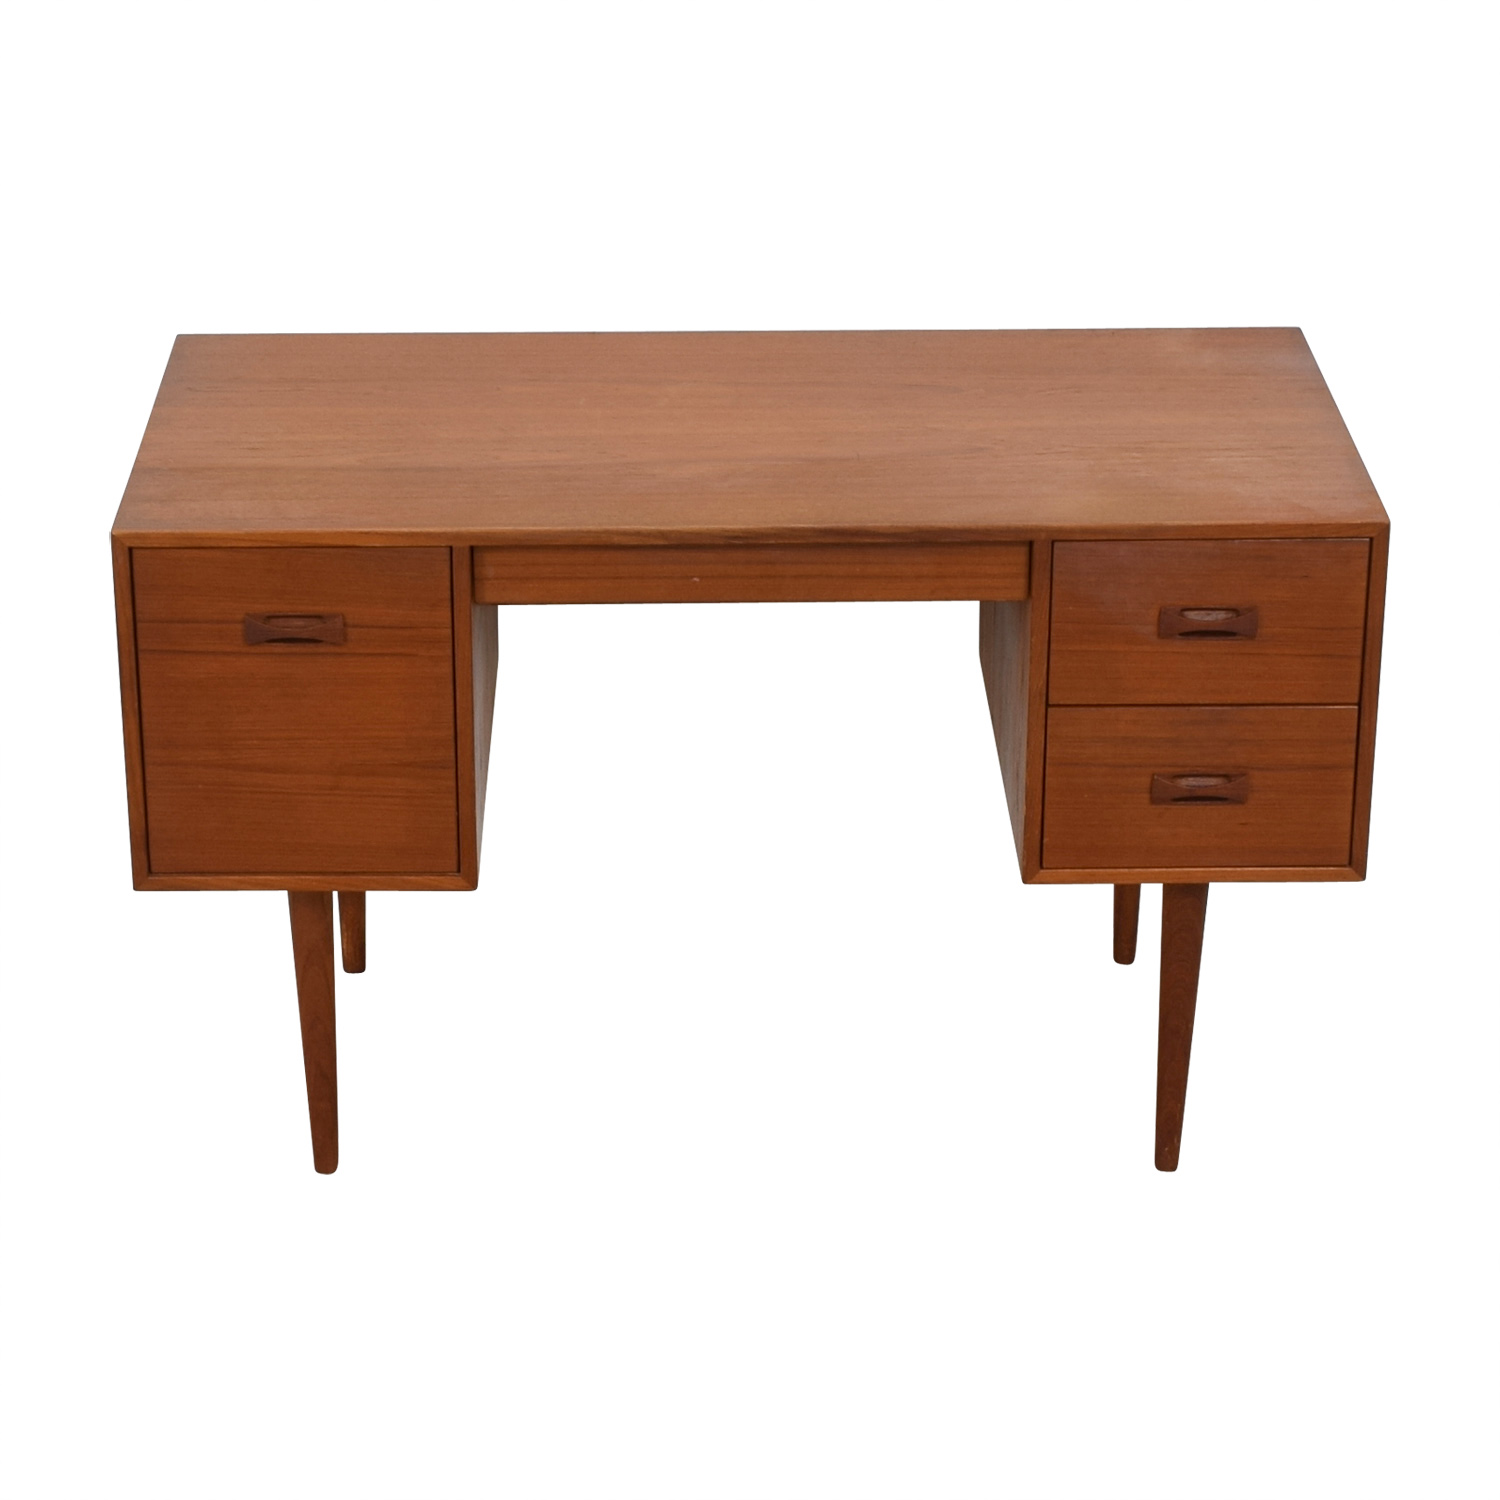 Mid-Century Danish Teak Desk / Home Office Desks